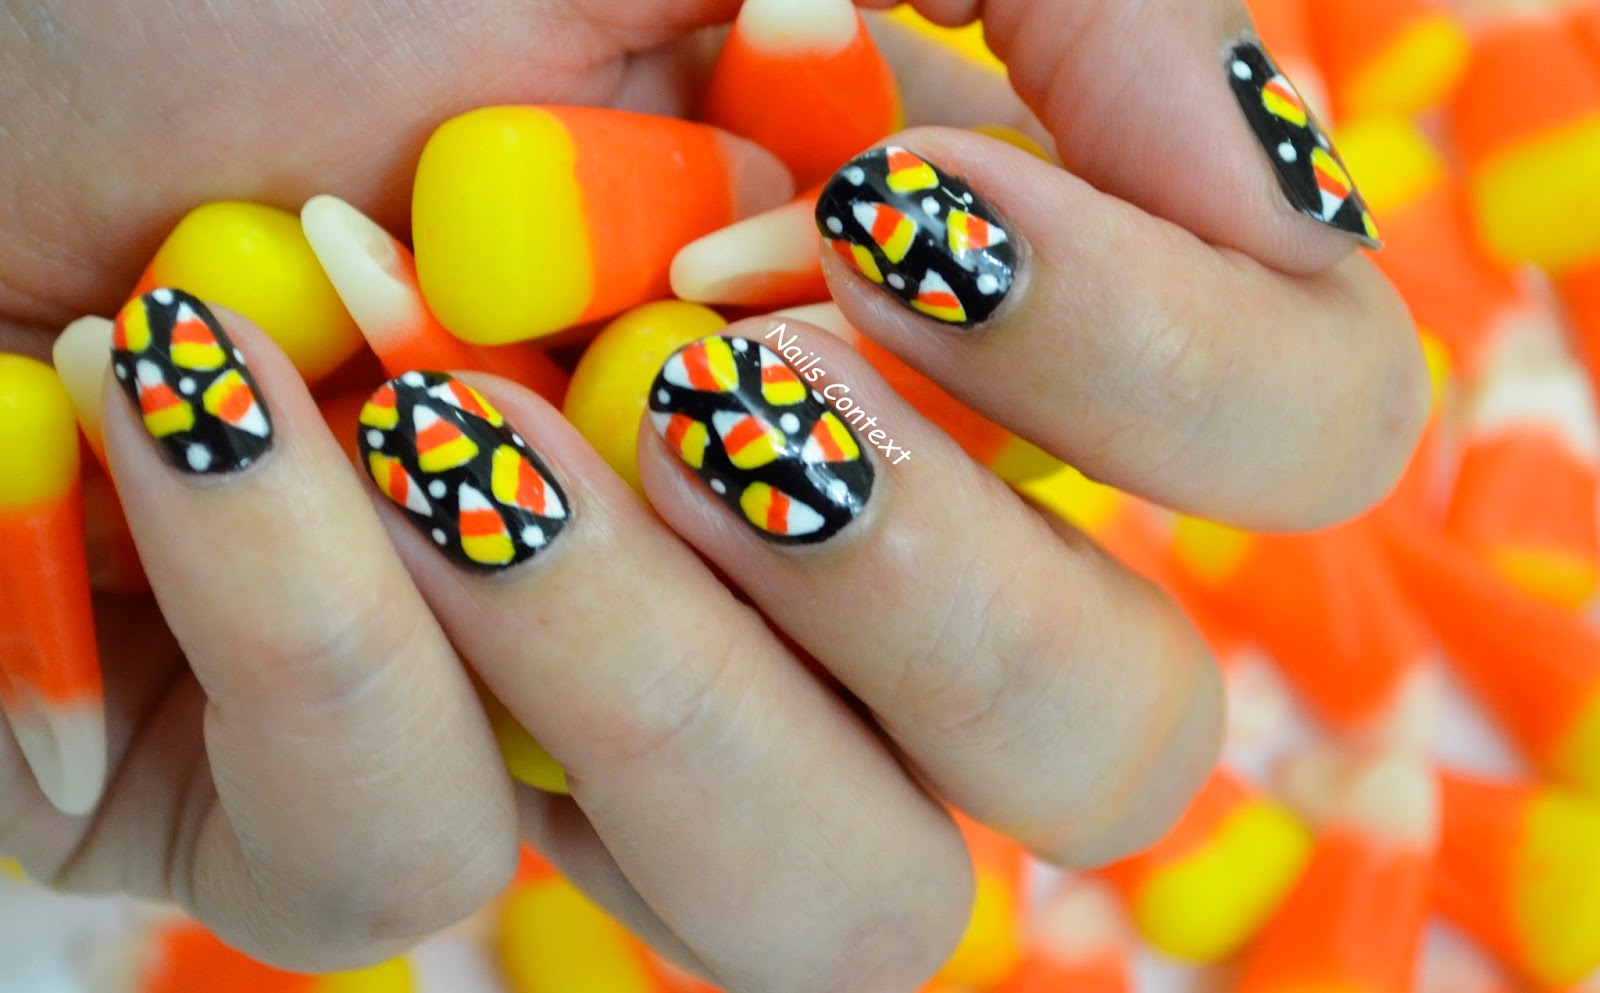 Nails context candy corn i did this design free hand using all zoya polishes purity darcy willa thandie you can see my previous candy corn nail art here prinsesfo Image collections